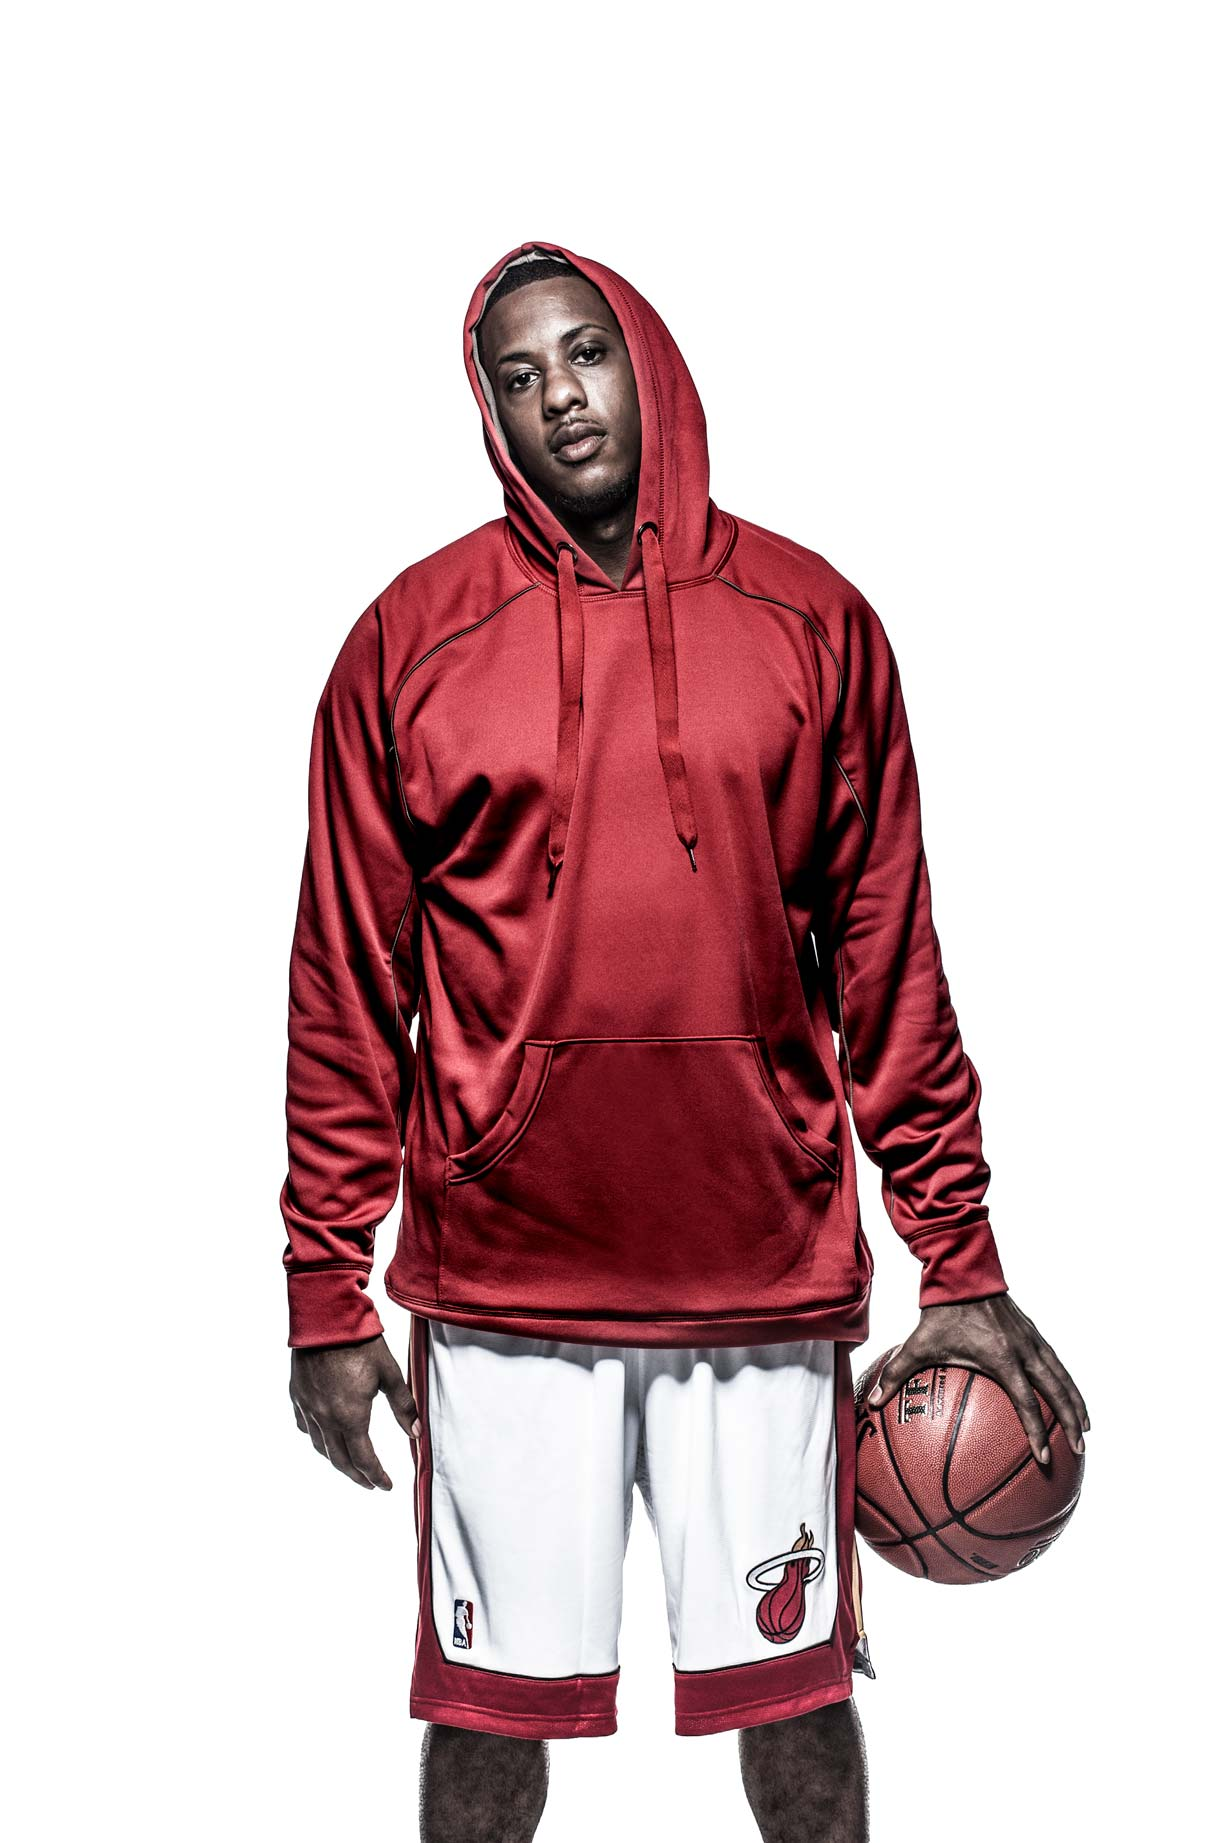 Mario Chalmers, Miami Heat, for Russell Athletic.